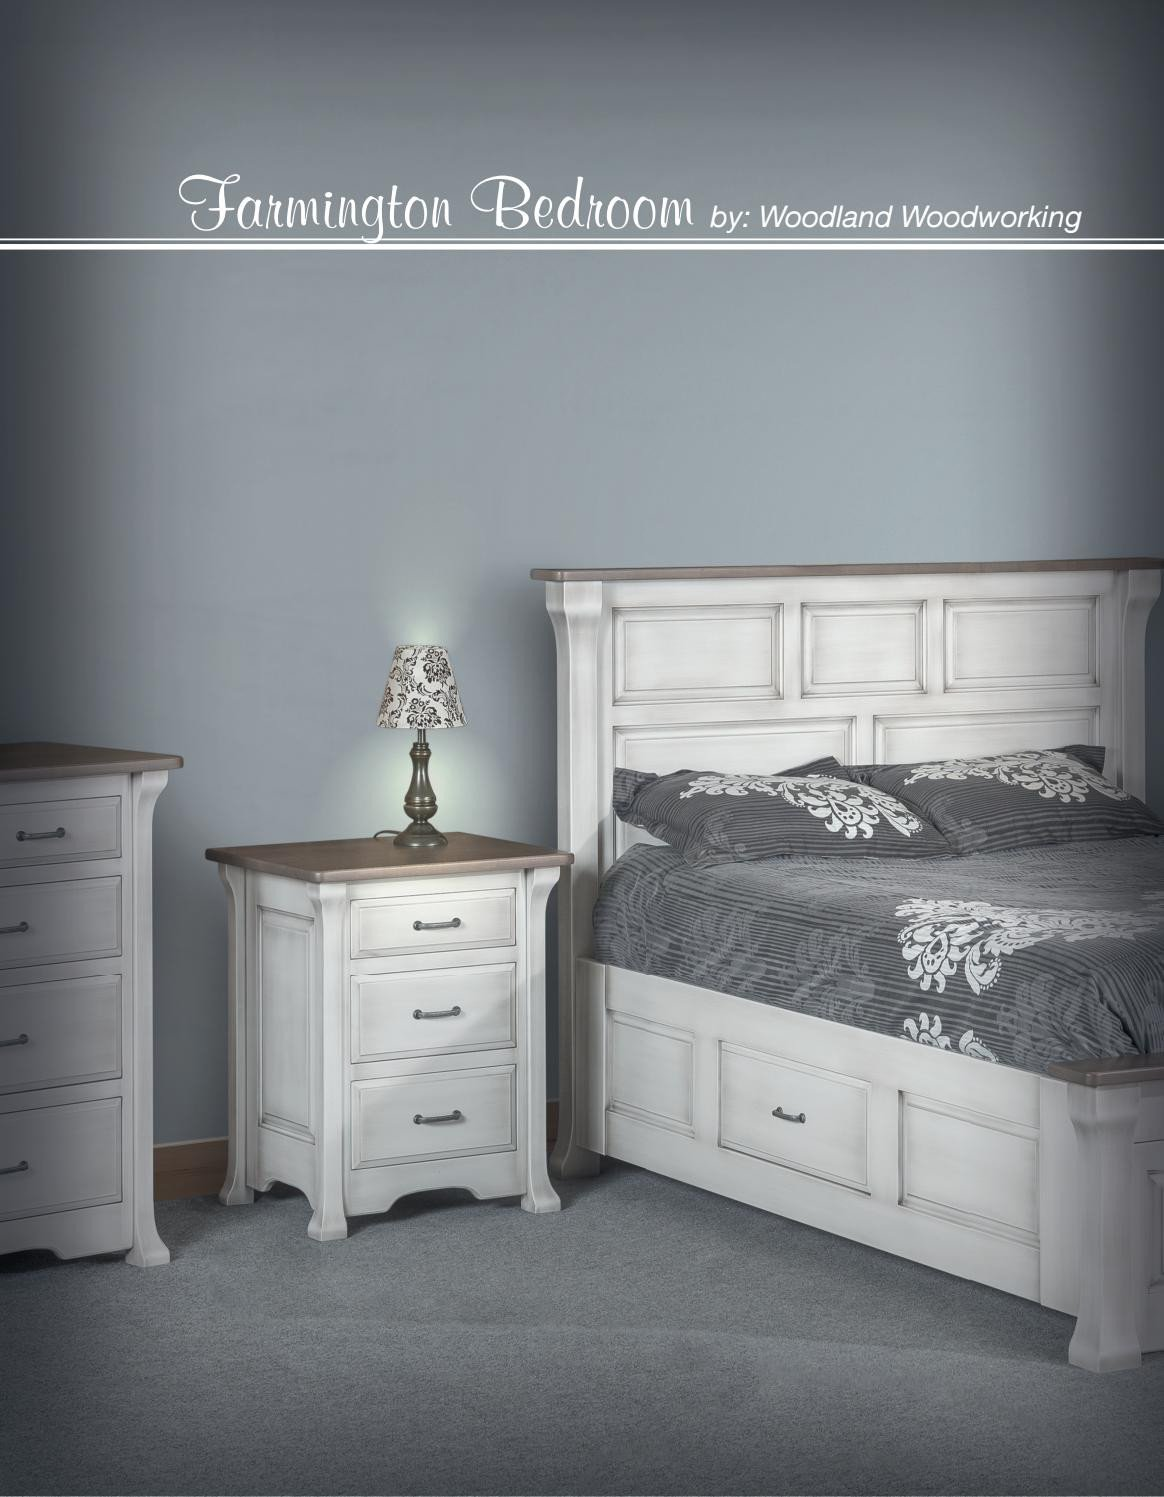 Distressed White Bedroom Furniture Unique 2018 Woodland Woodworking New Bedroom Catalog E&g Amish